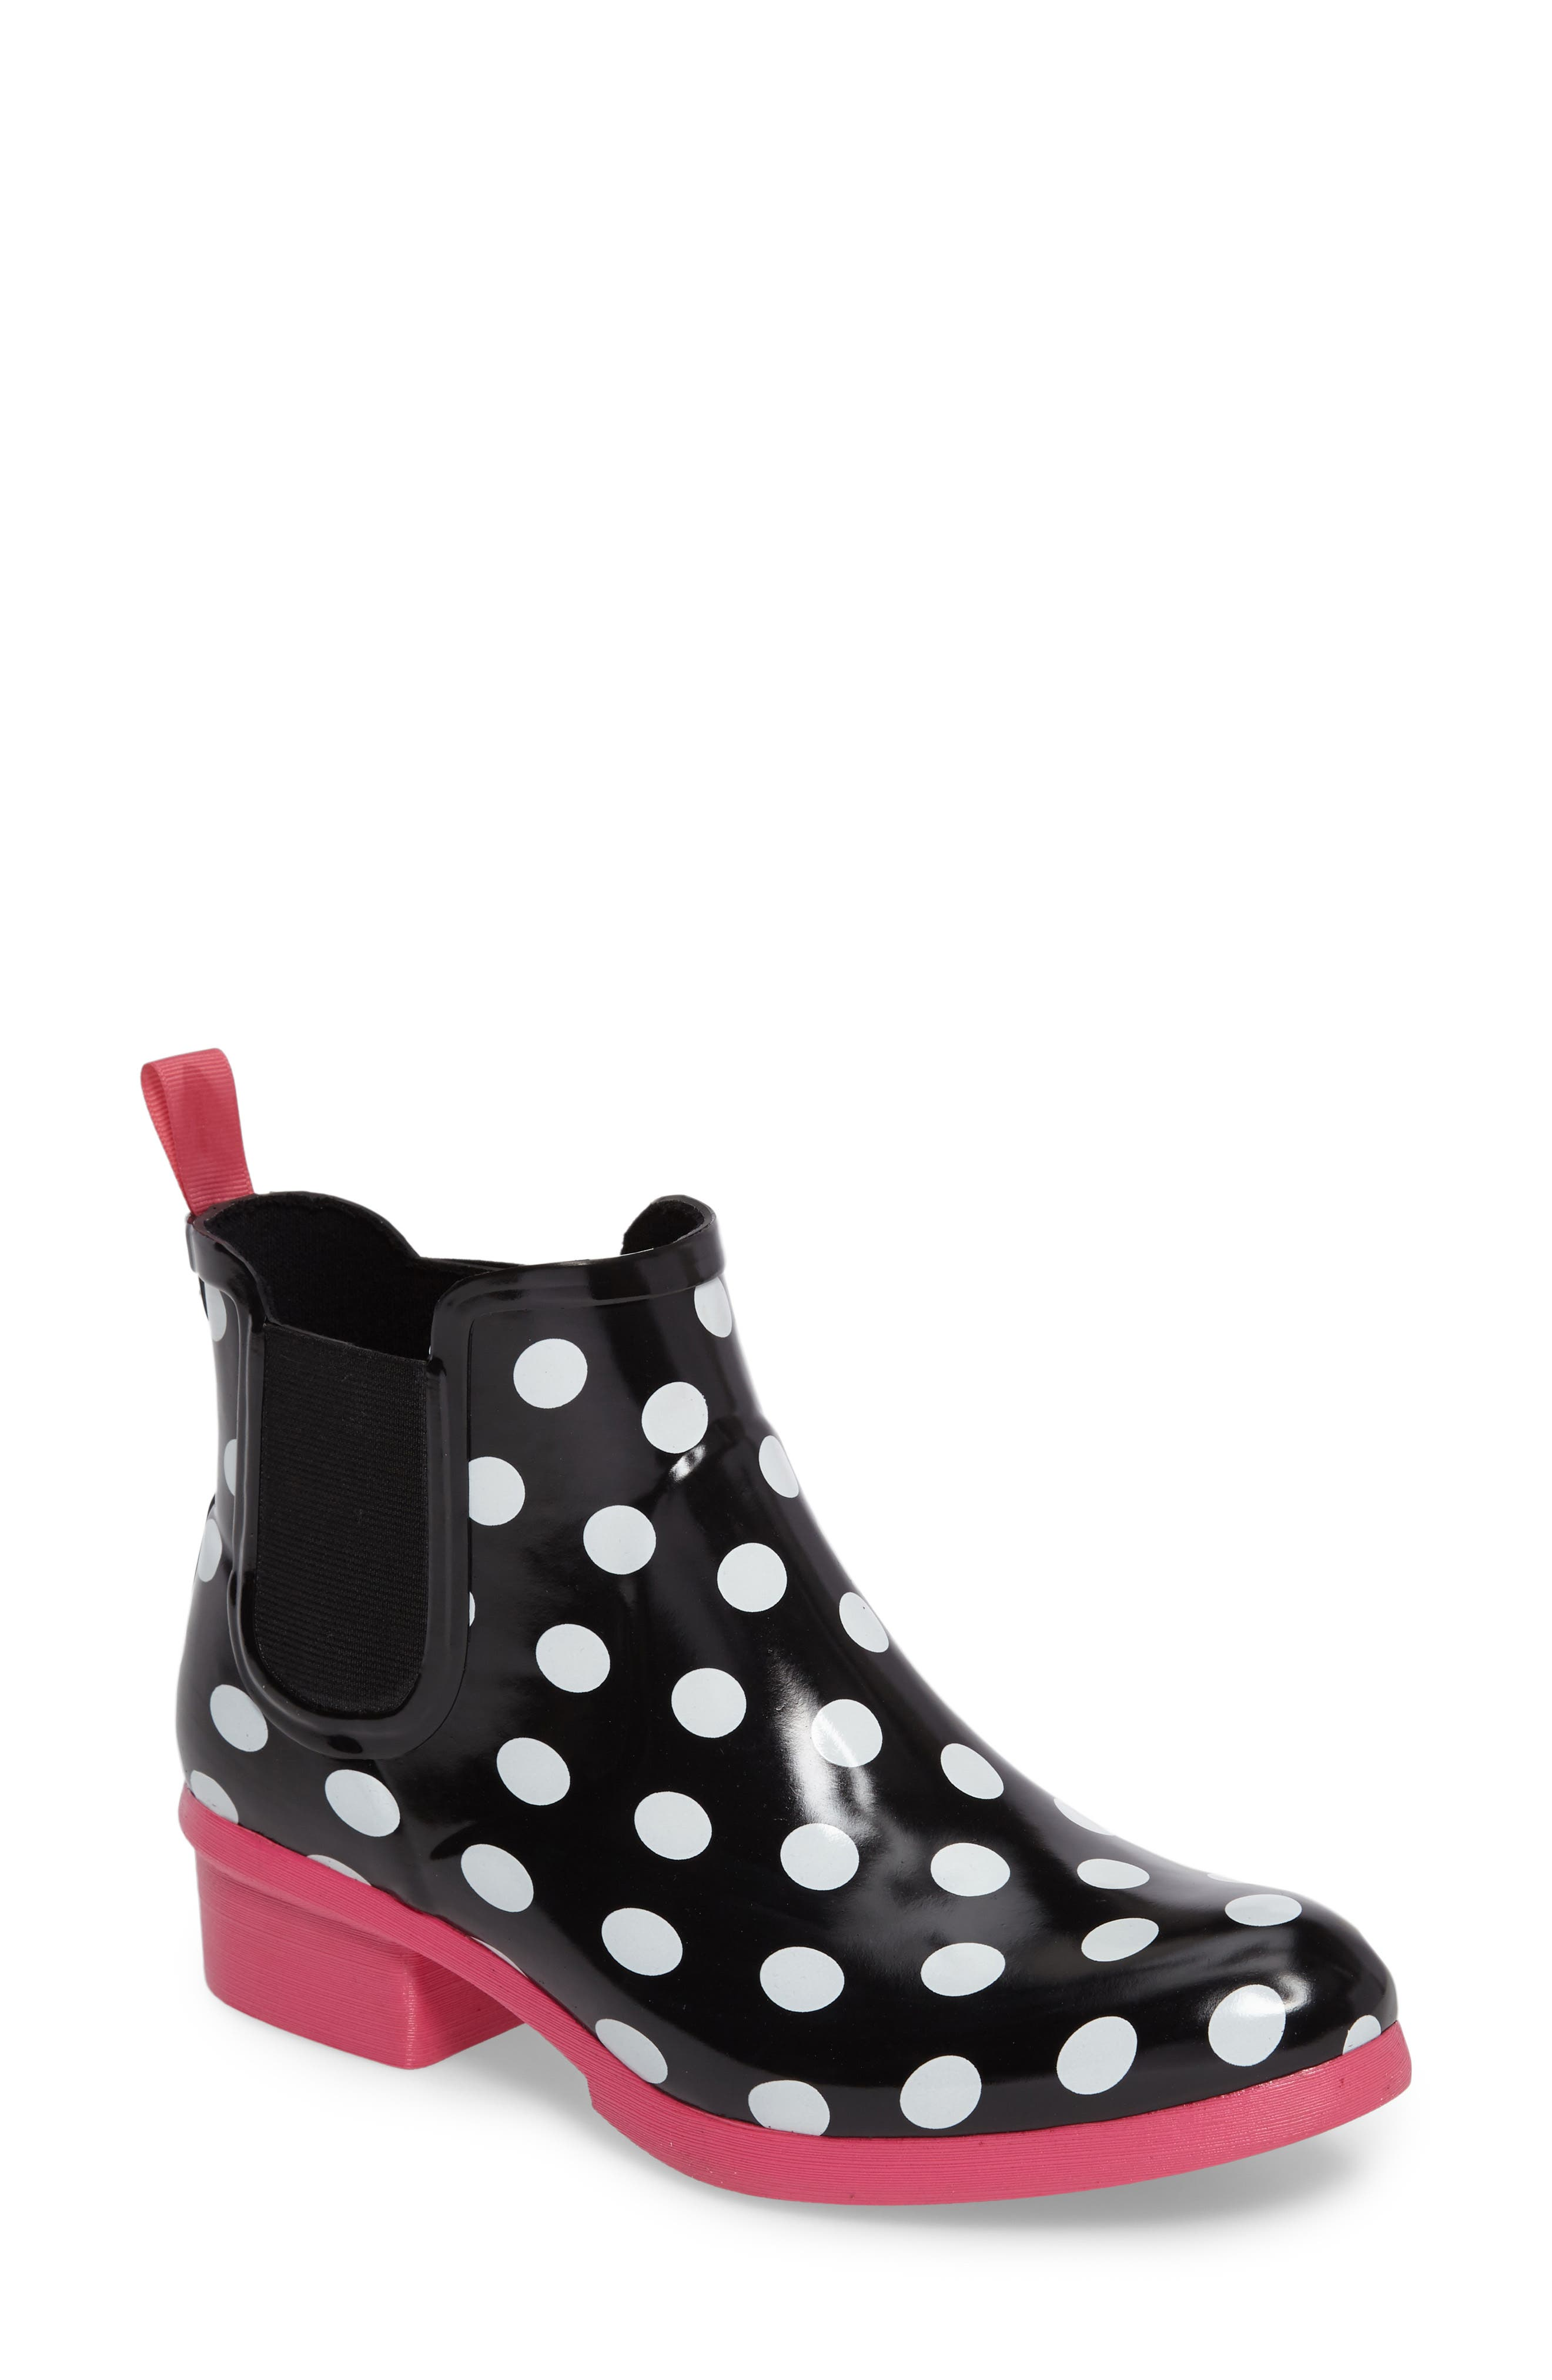 Main Image - kate spade new york trudy chelsea rain bootie (Women)